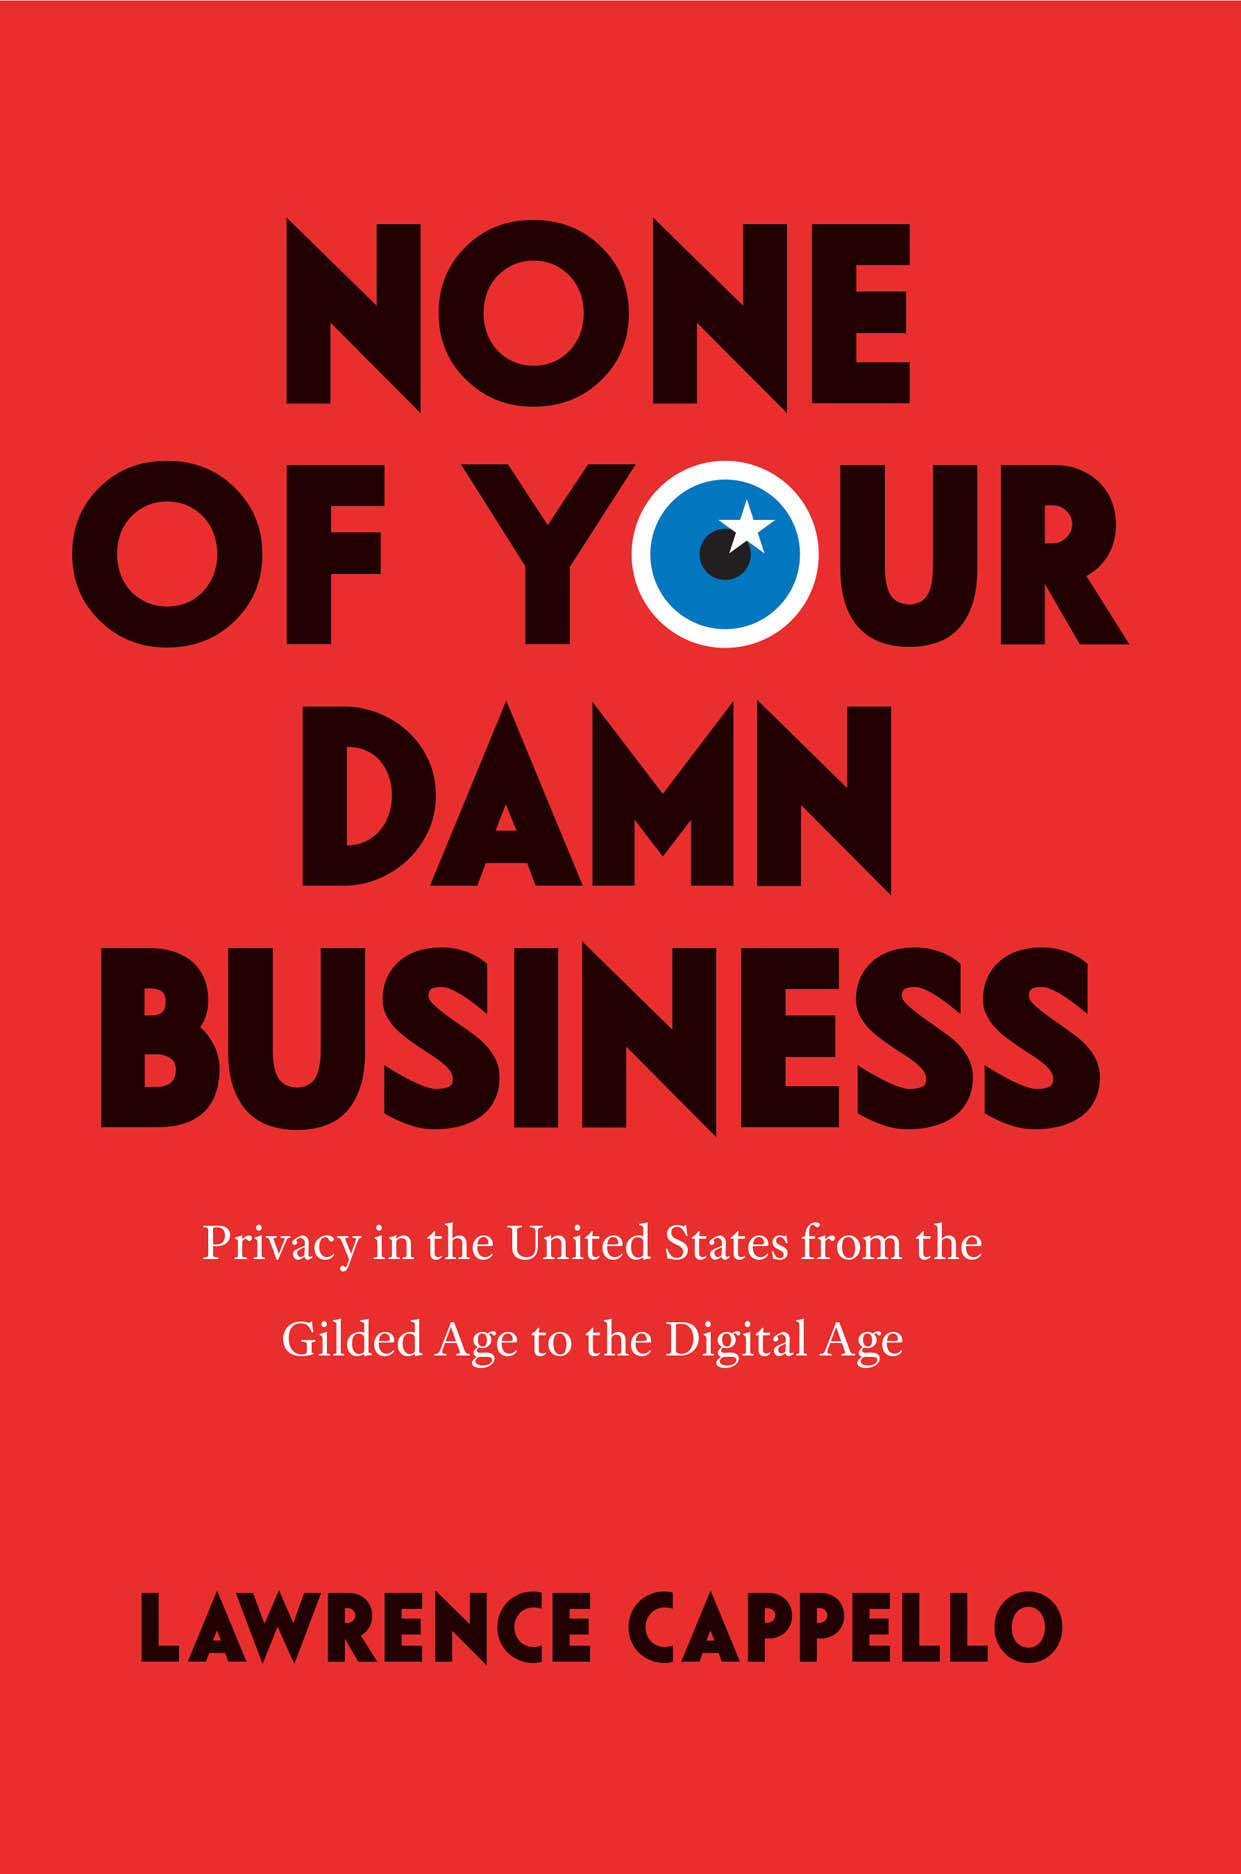 None of Your Damn Business: Privacy in the United States from the Gilded Age to the Digital Age